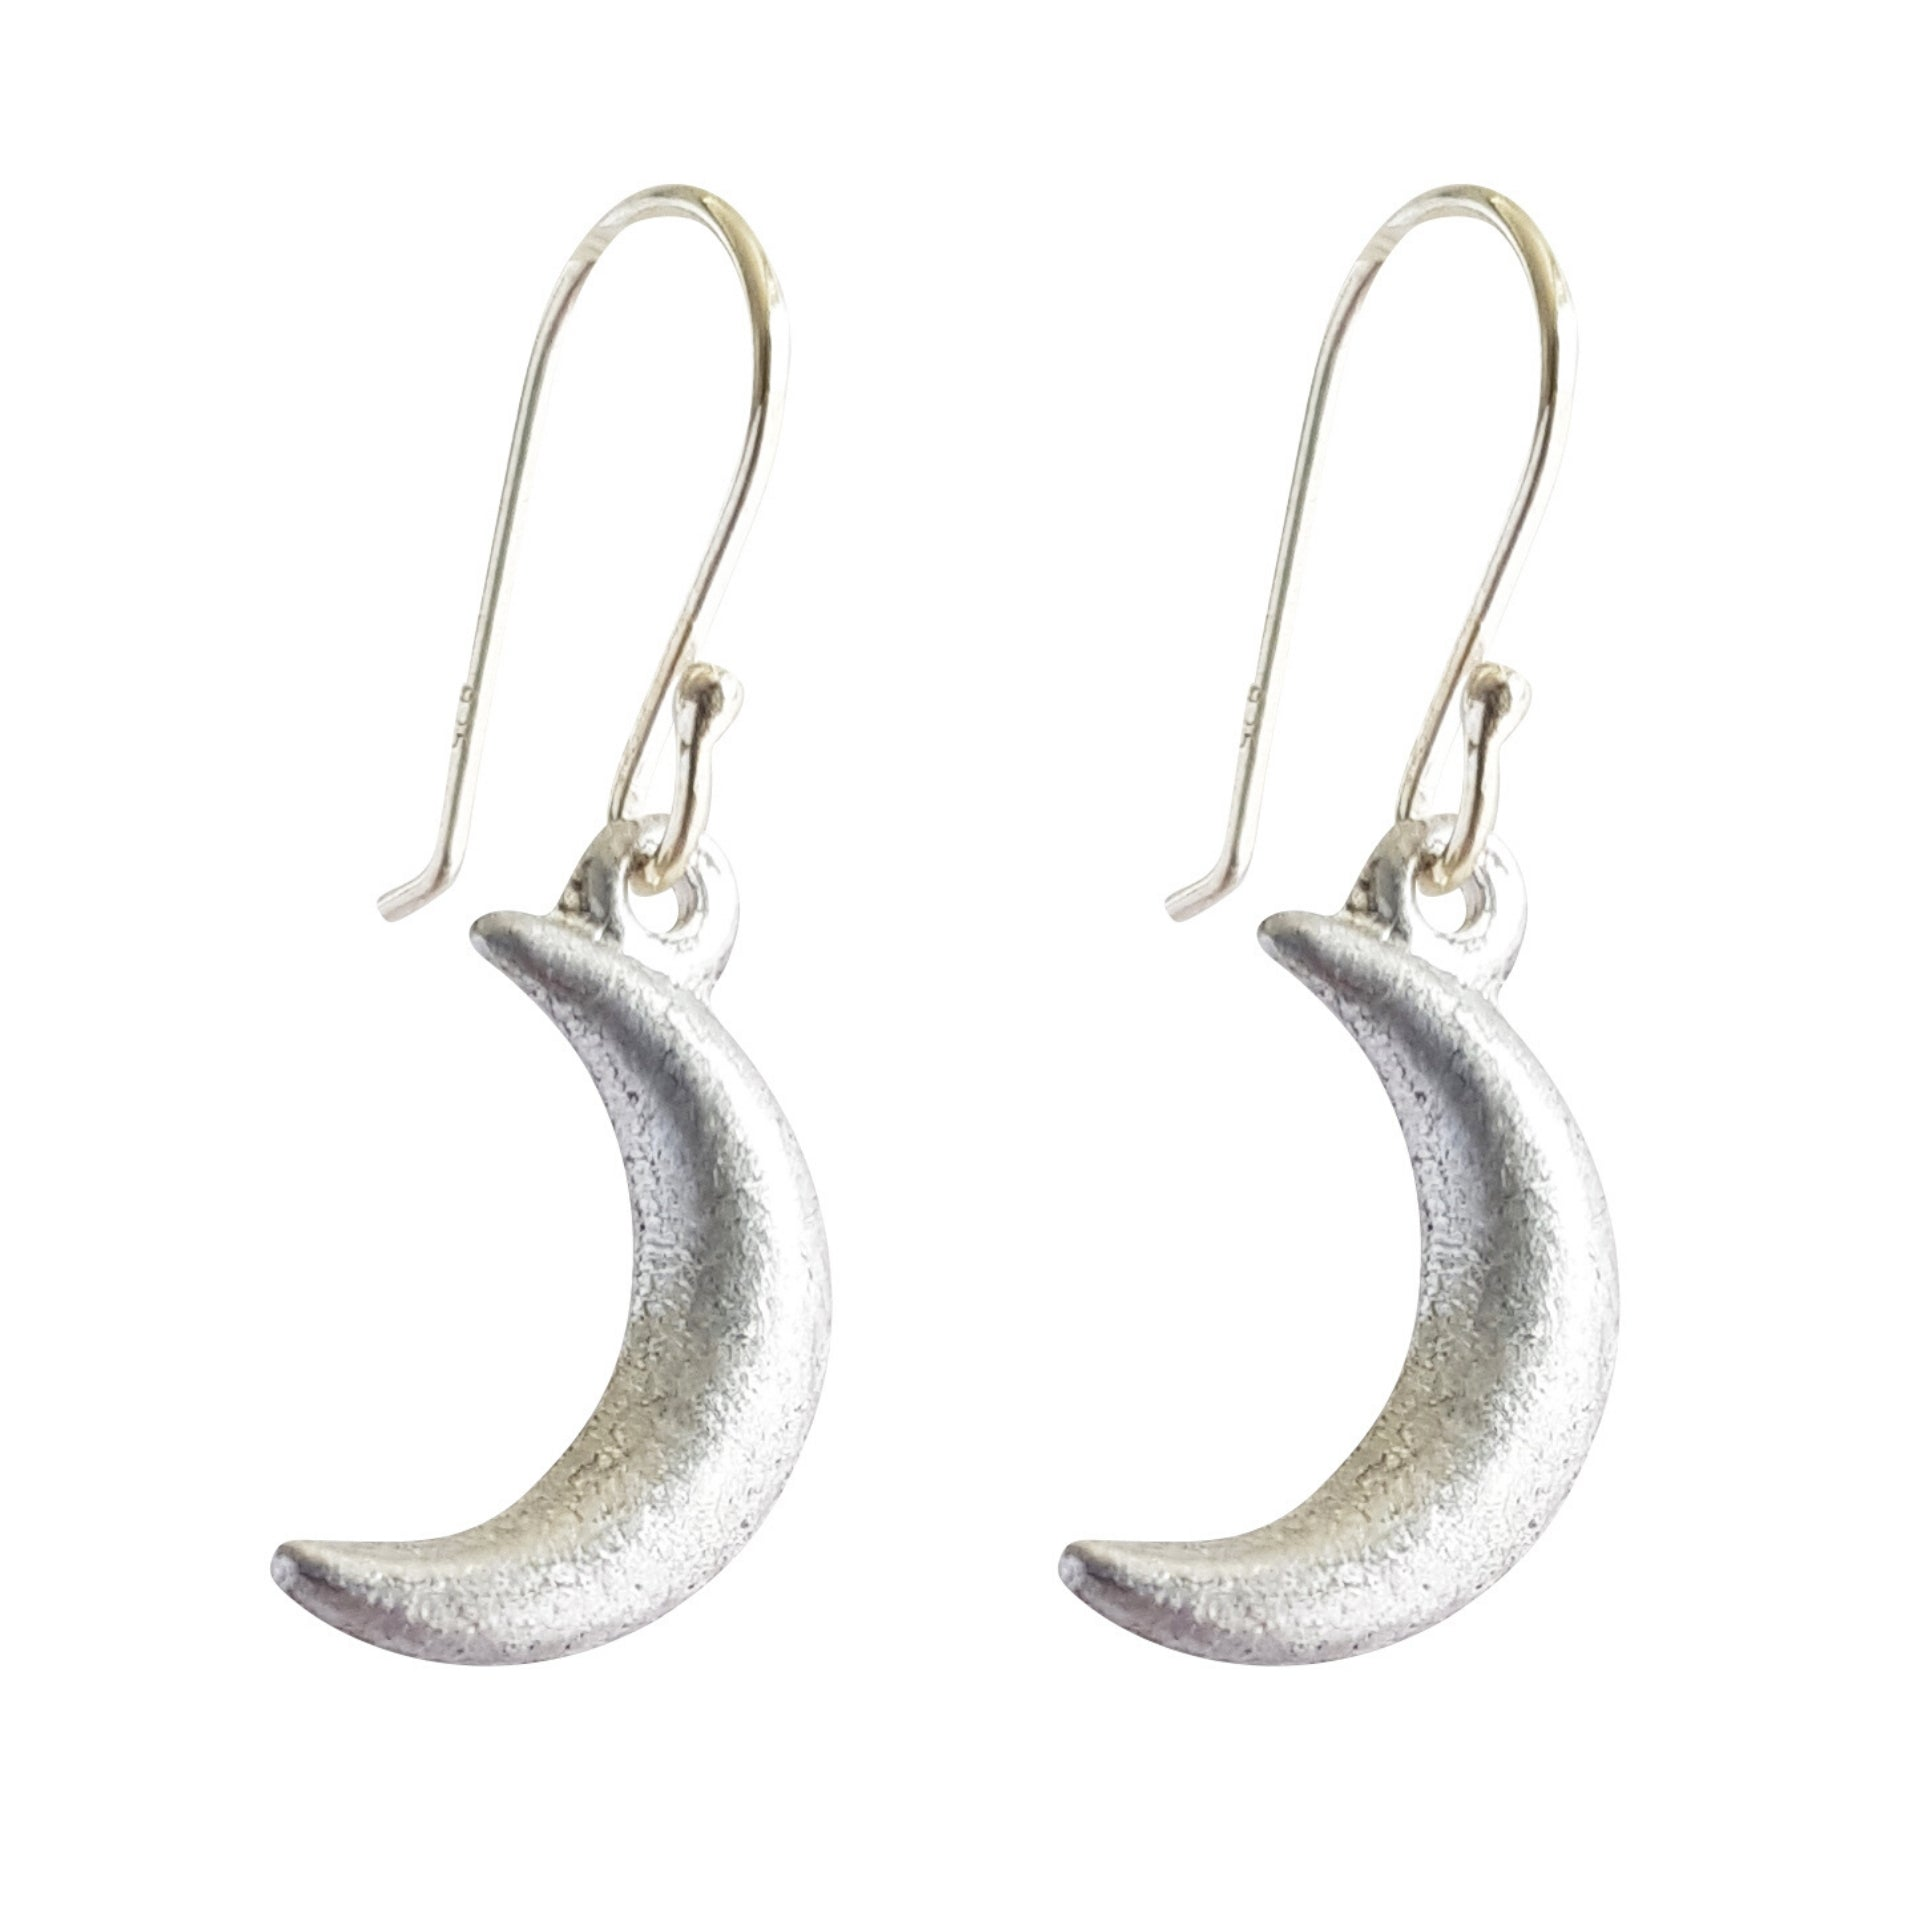 LOVEbomb Crescent Moon Shaped Sterling Silver Hook Earrings